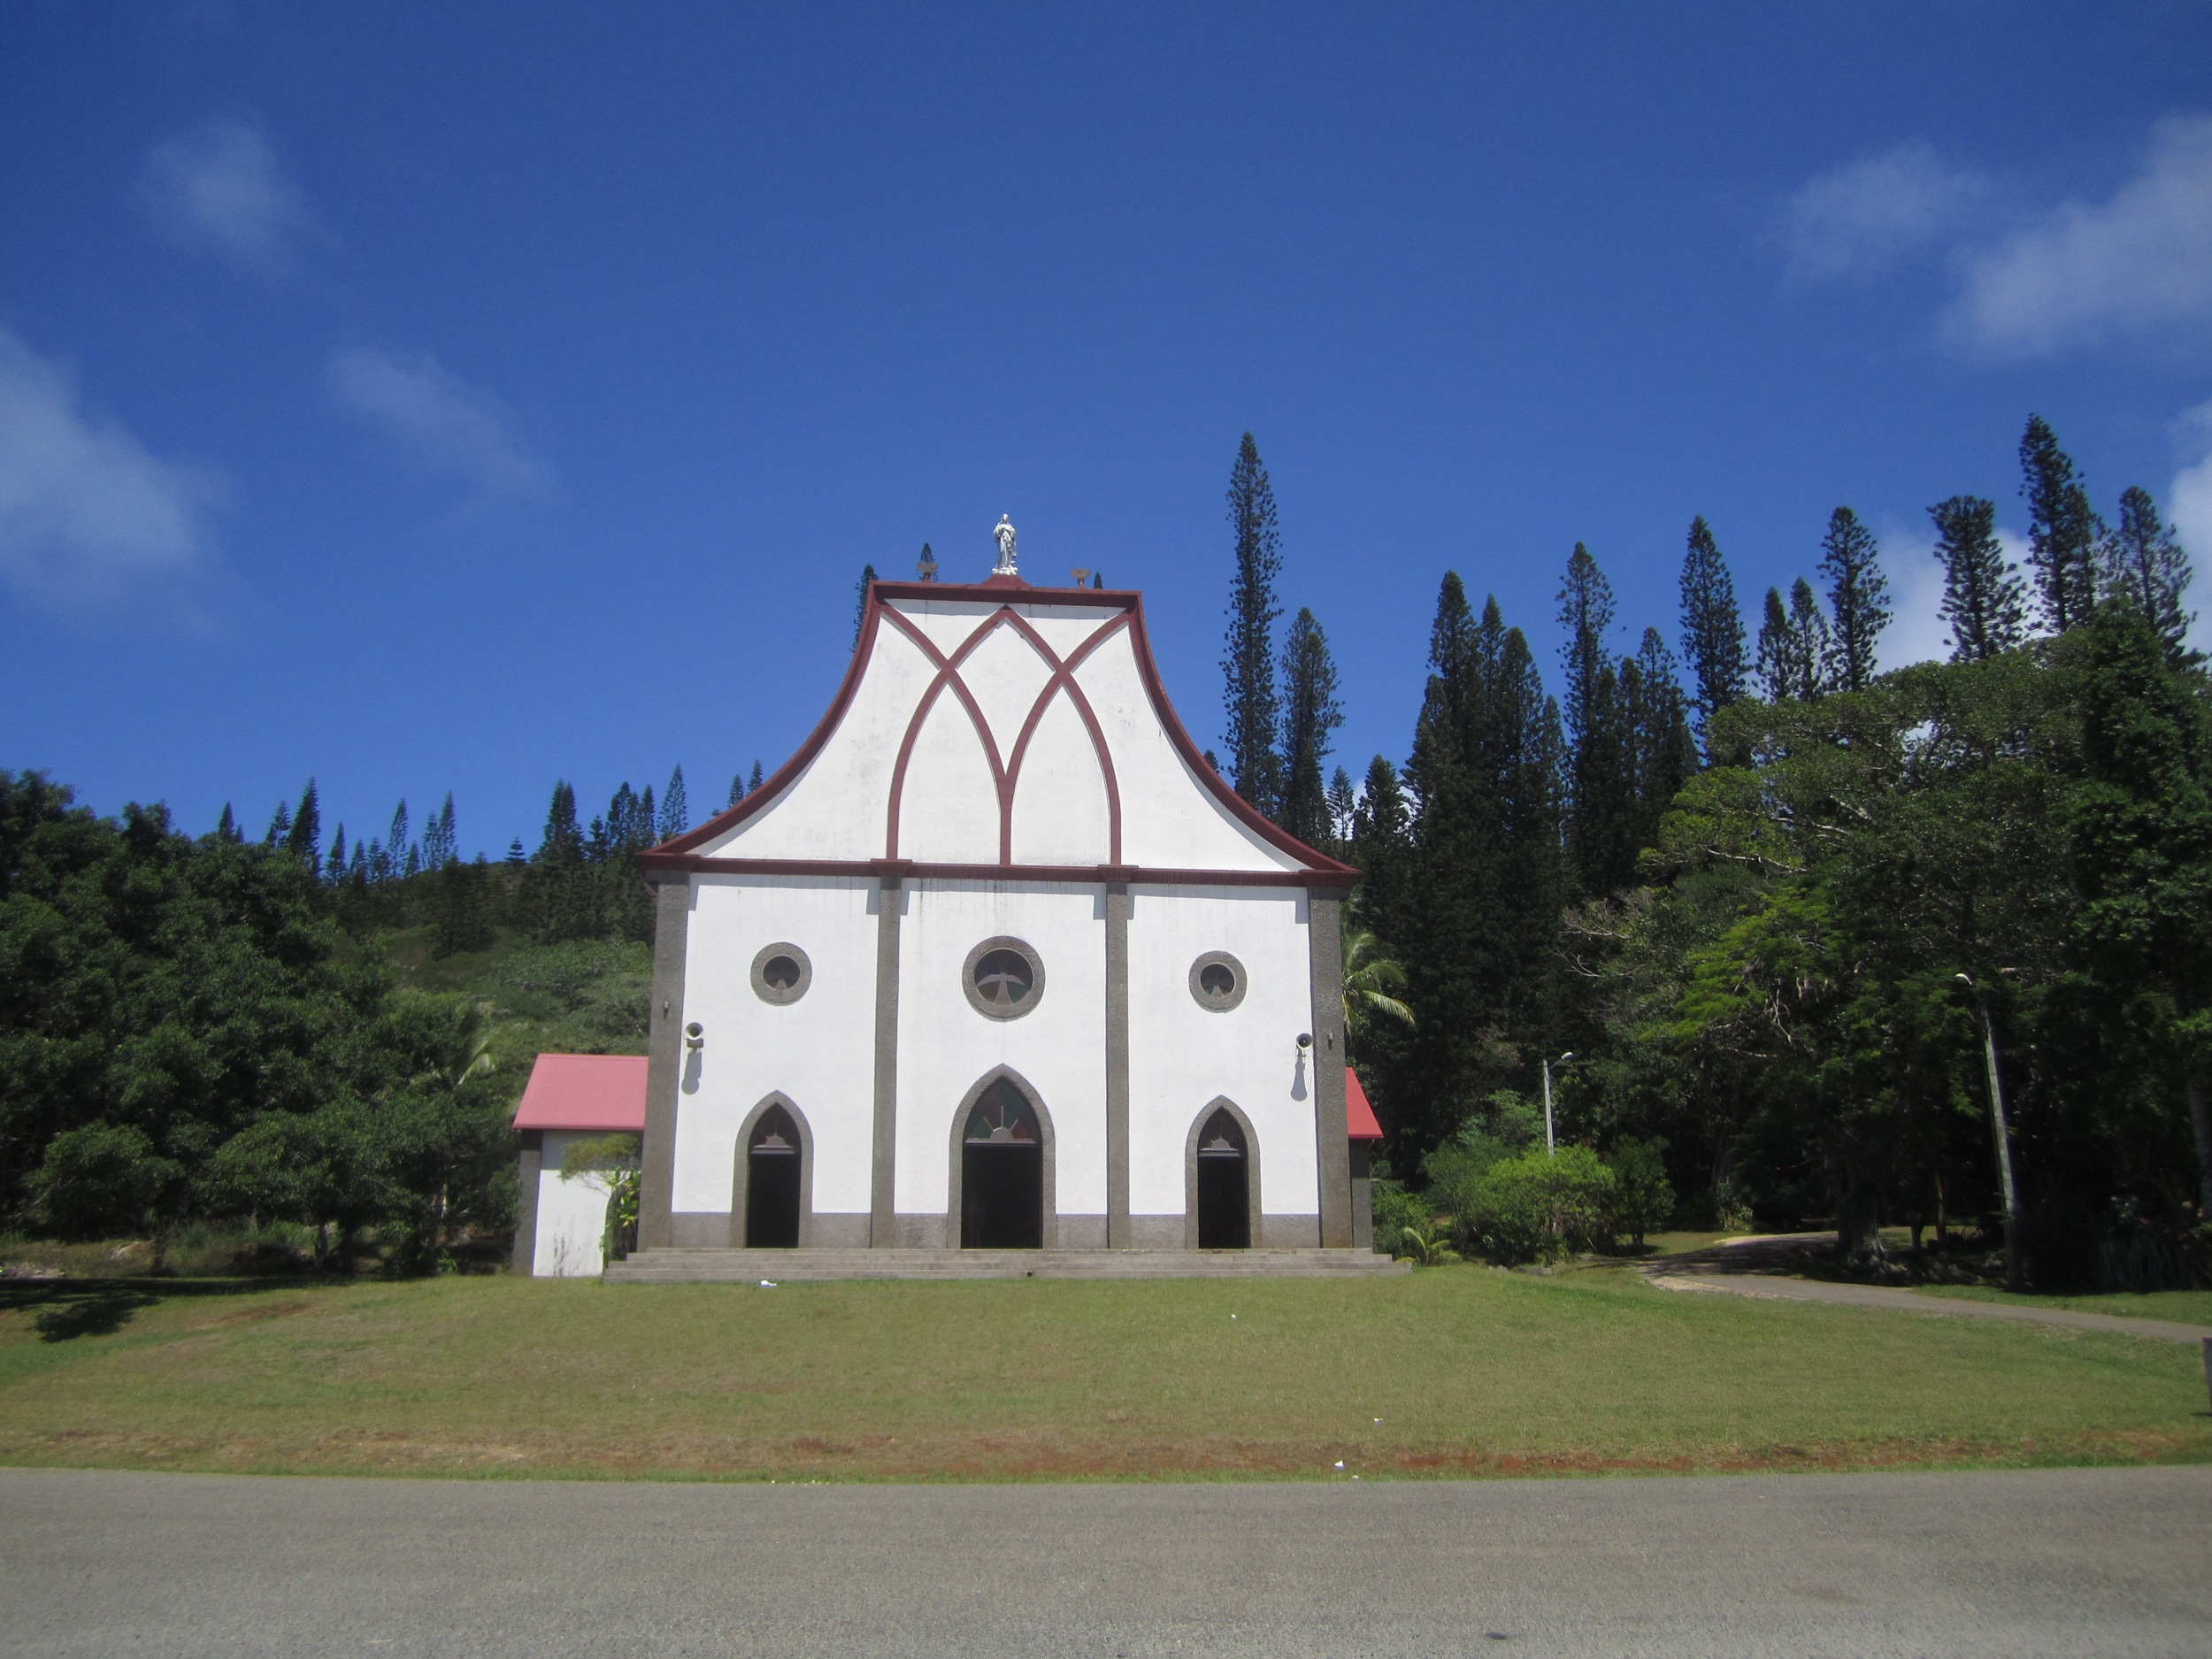 The beautiful Catholic church in the village of Vao, Ile des Pins, offered a cool, shady resting place during a long bicycle ride.